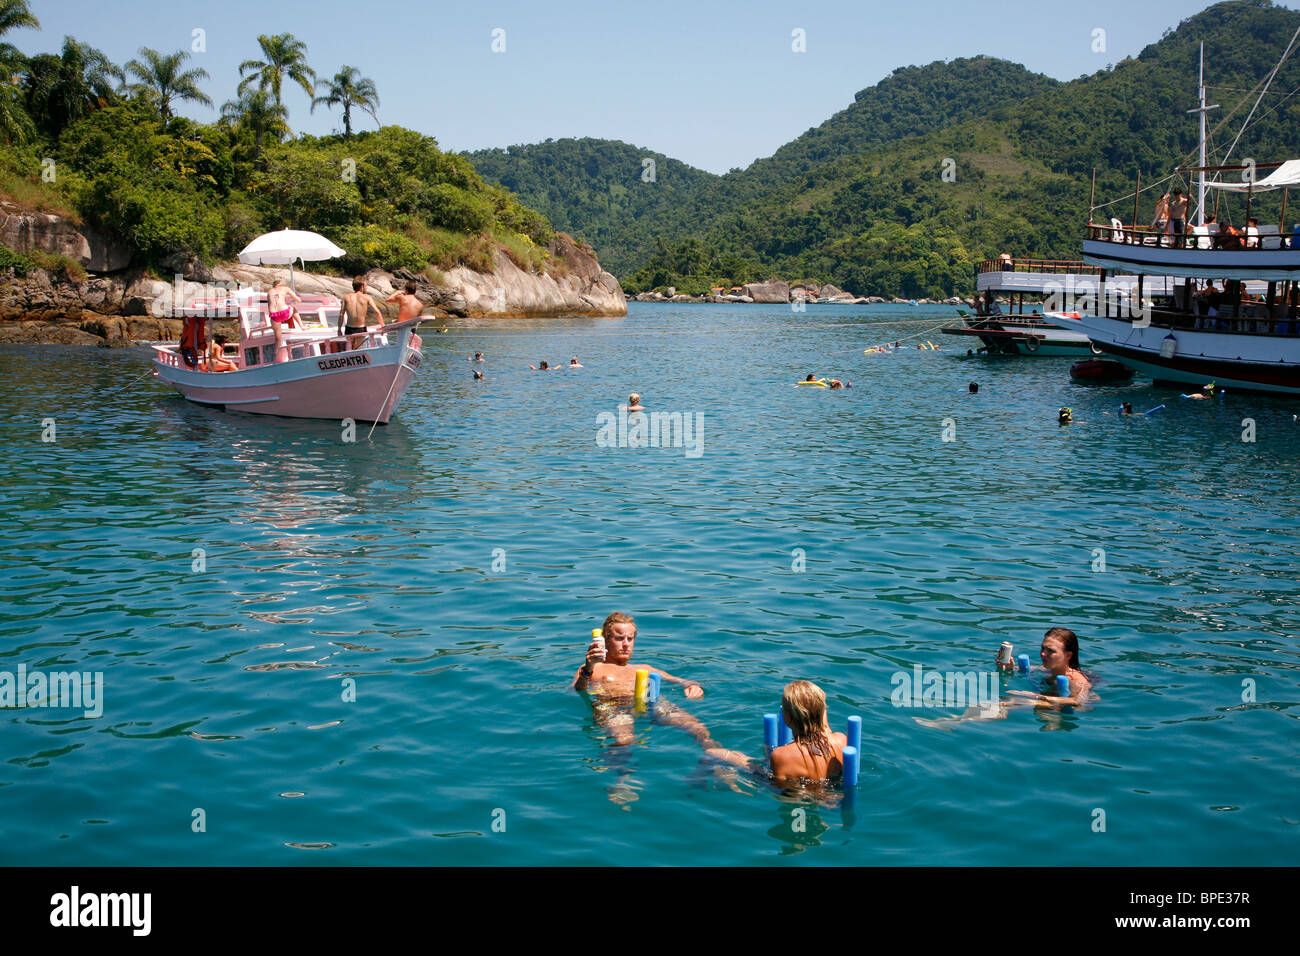 Tourist on a chartered fishing boat cruising between the different beaches and islands around Parati, Rio de Janeiro - Stock Image